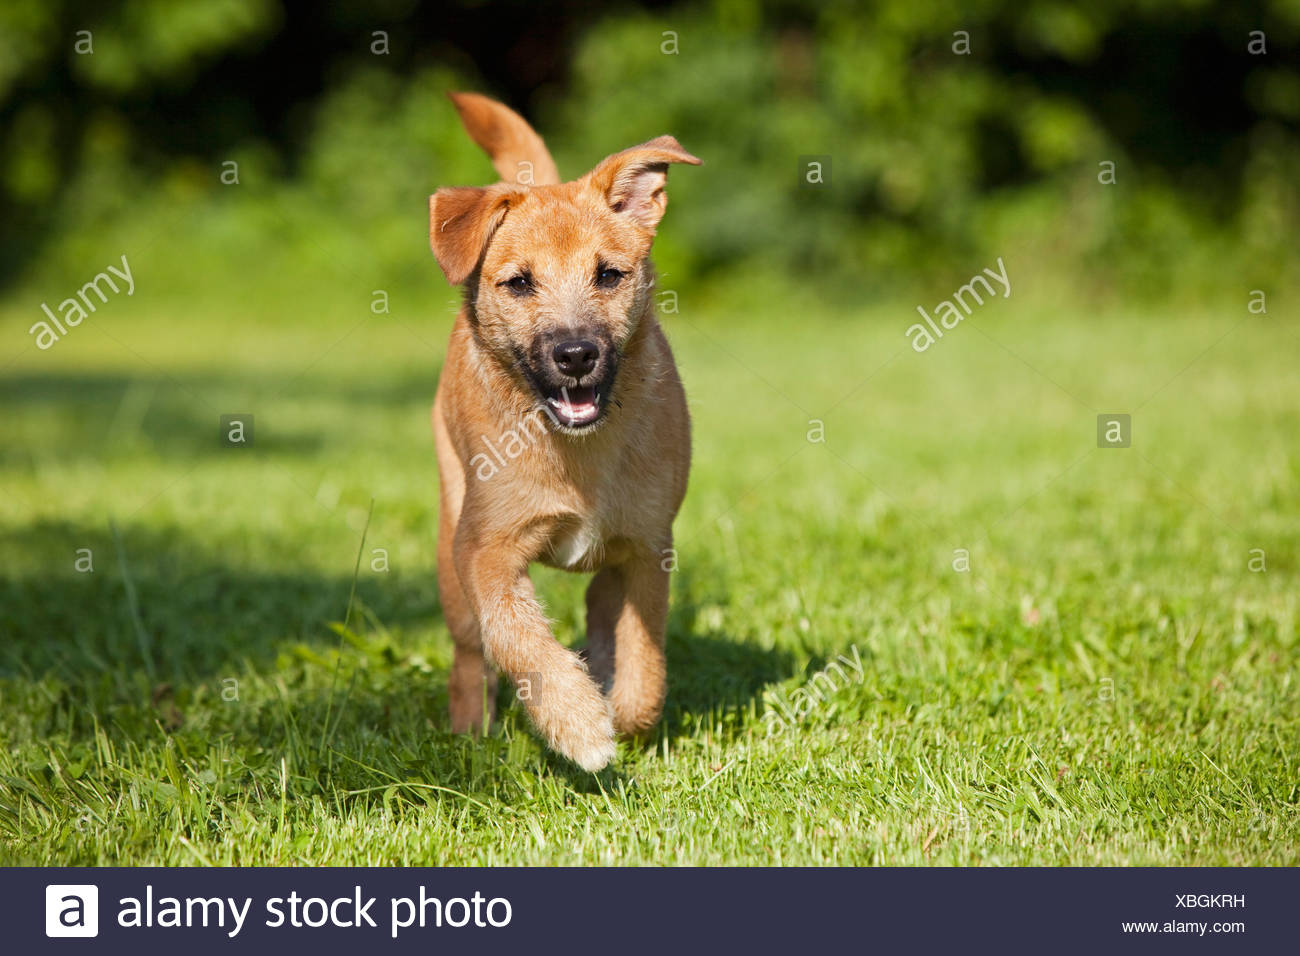 Germany, Bavaria, Parson jack russel dog running on grass - Stock Image